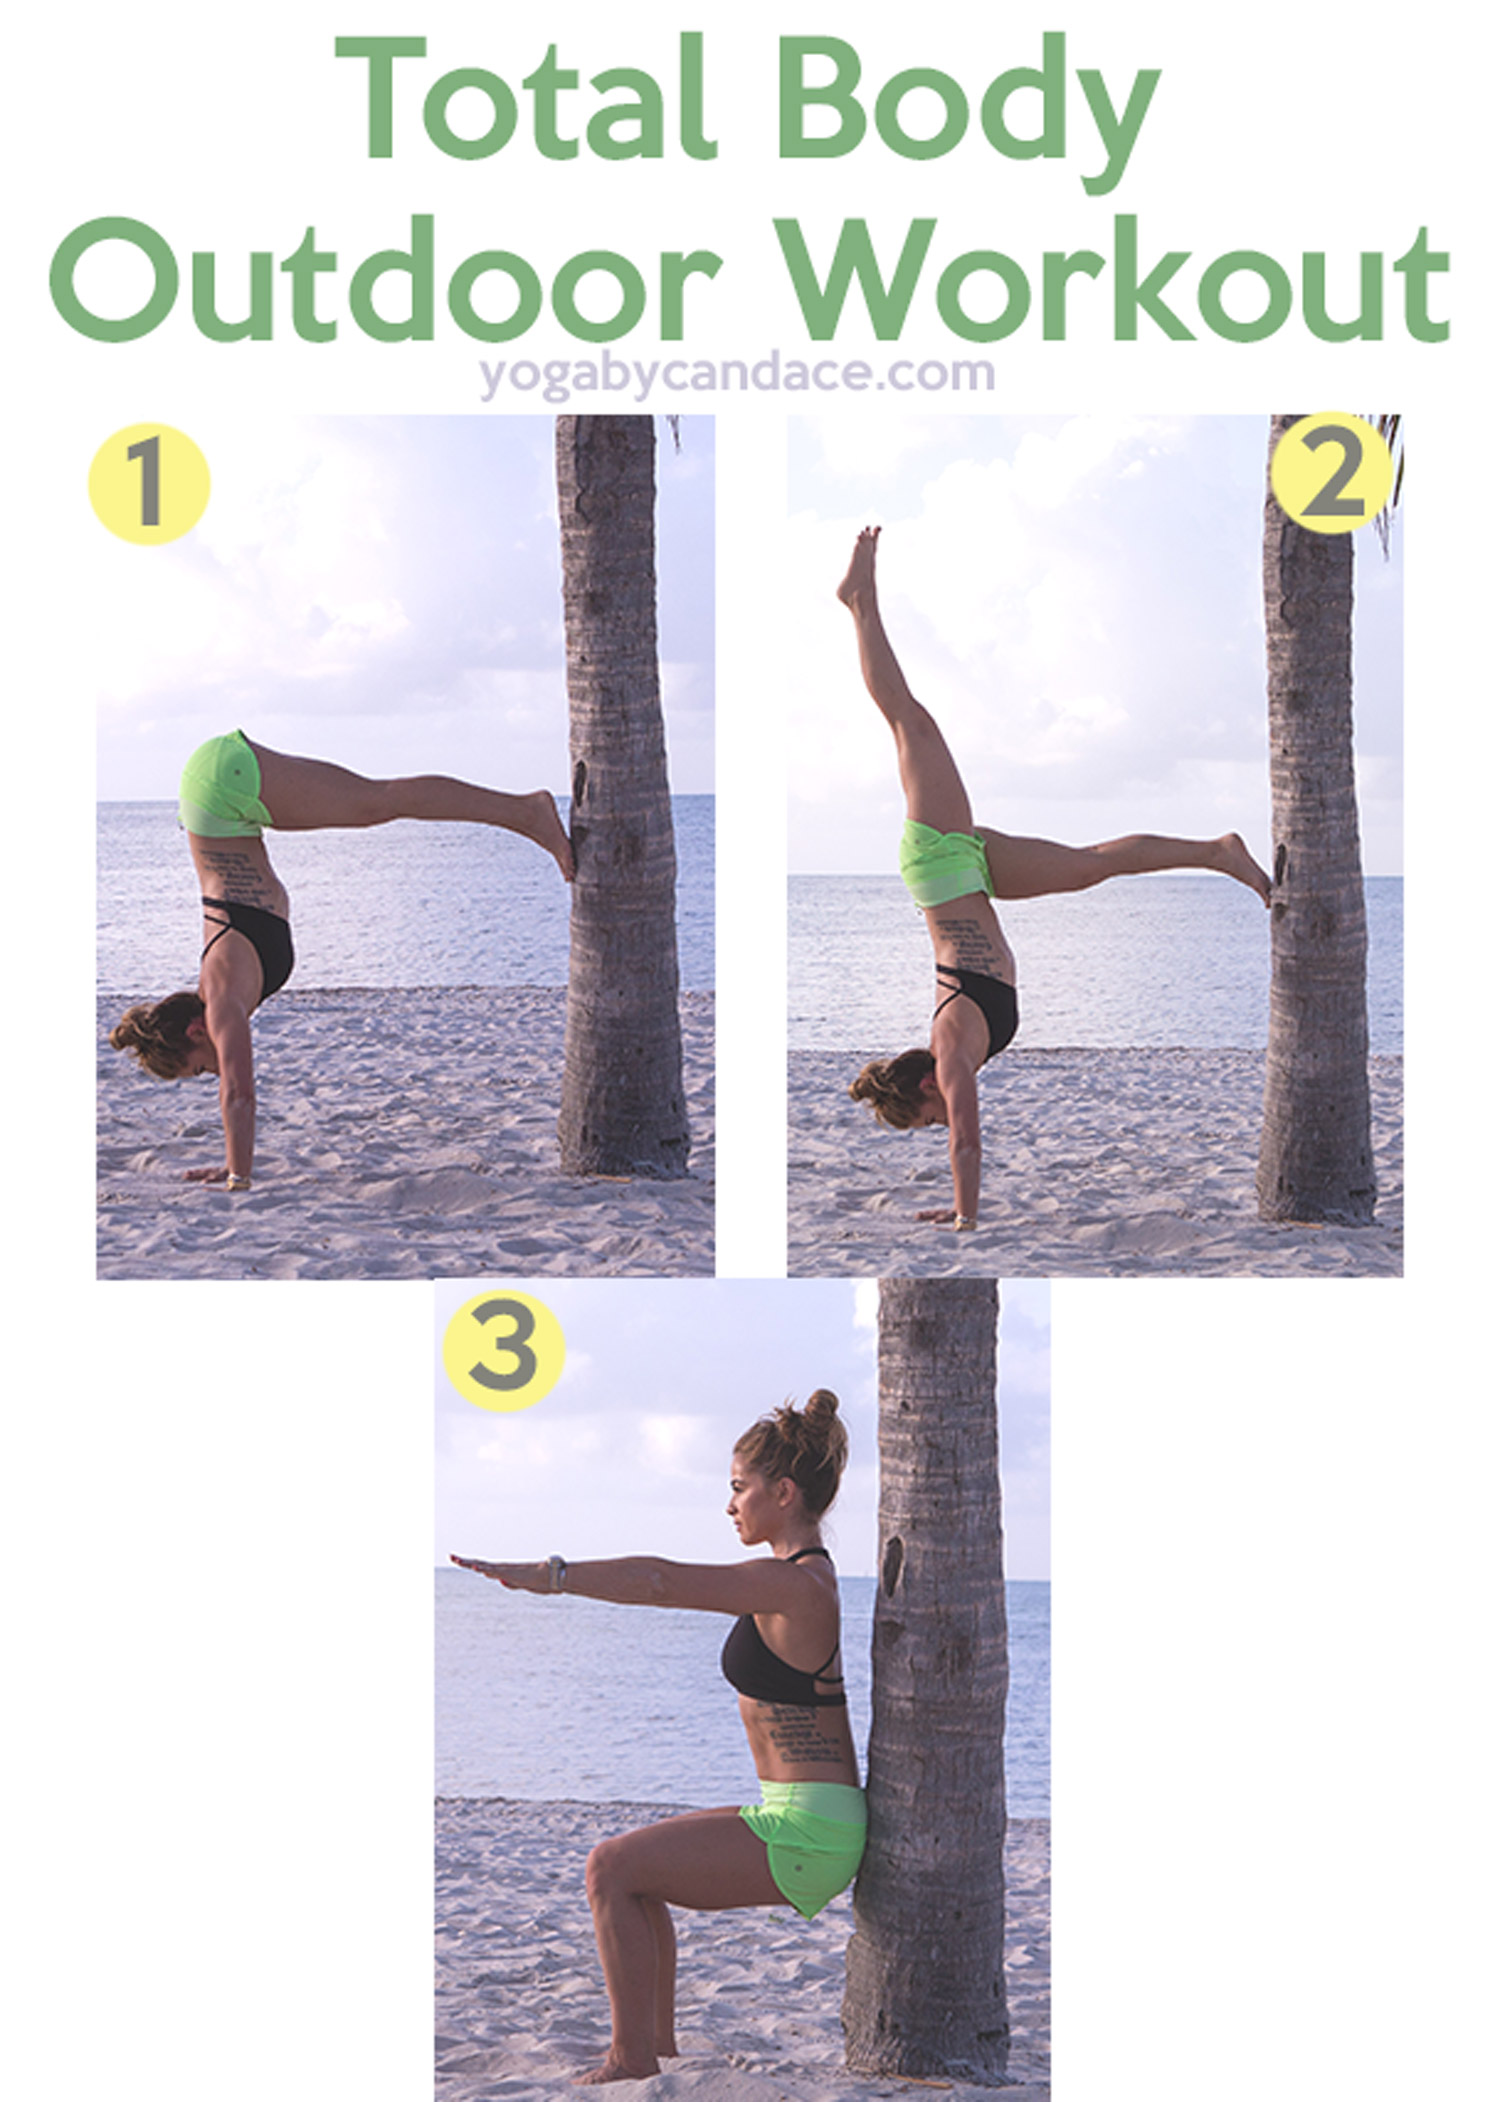 Follow us on Pinterest , and pin this image for easy reference later - Effective Outdoor Workout for Total Body